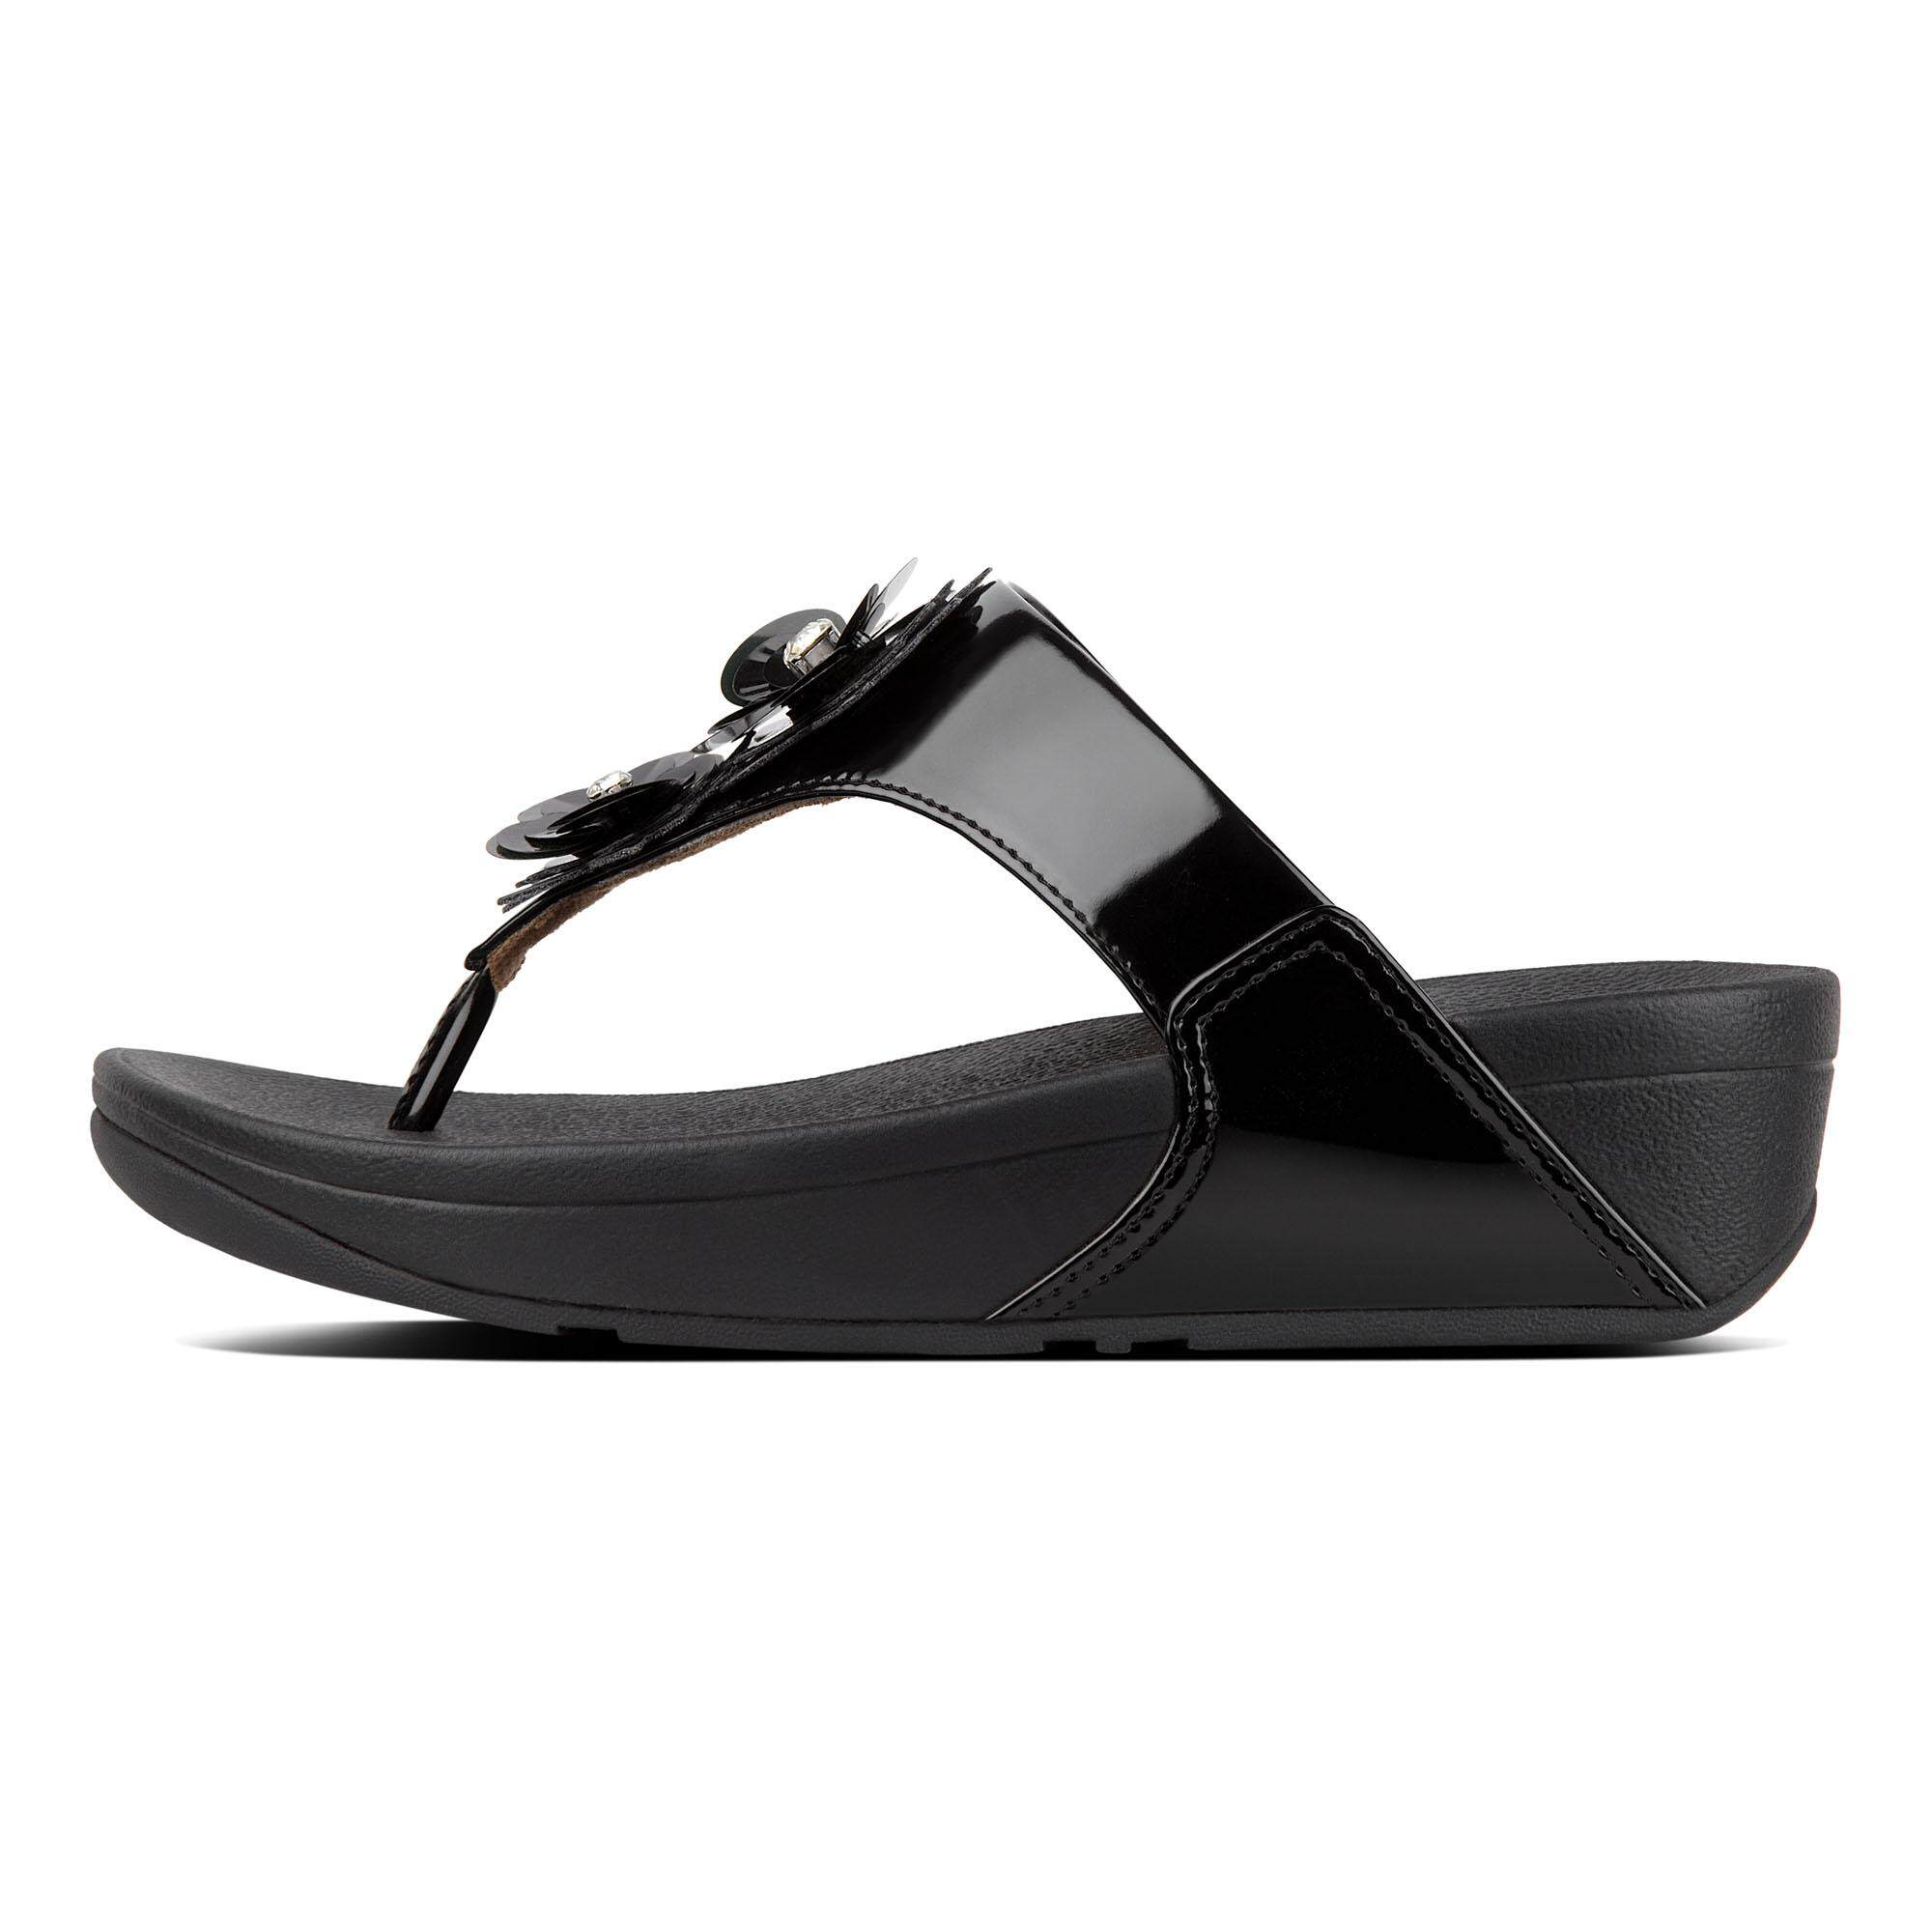 48f06e32dac Popular Fitflop Sandals for the Best Prices in Malaysia